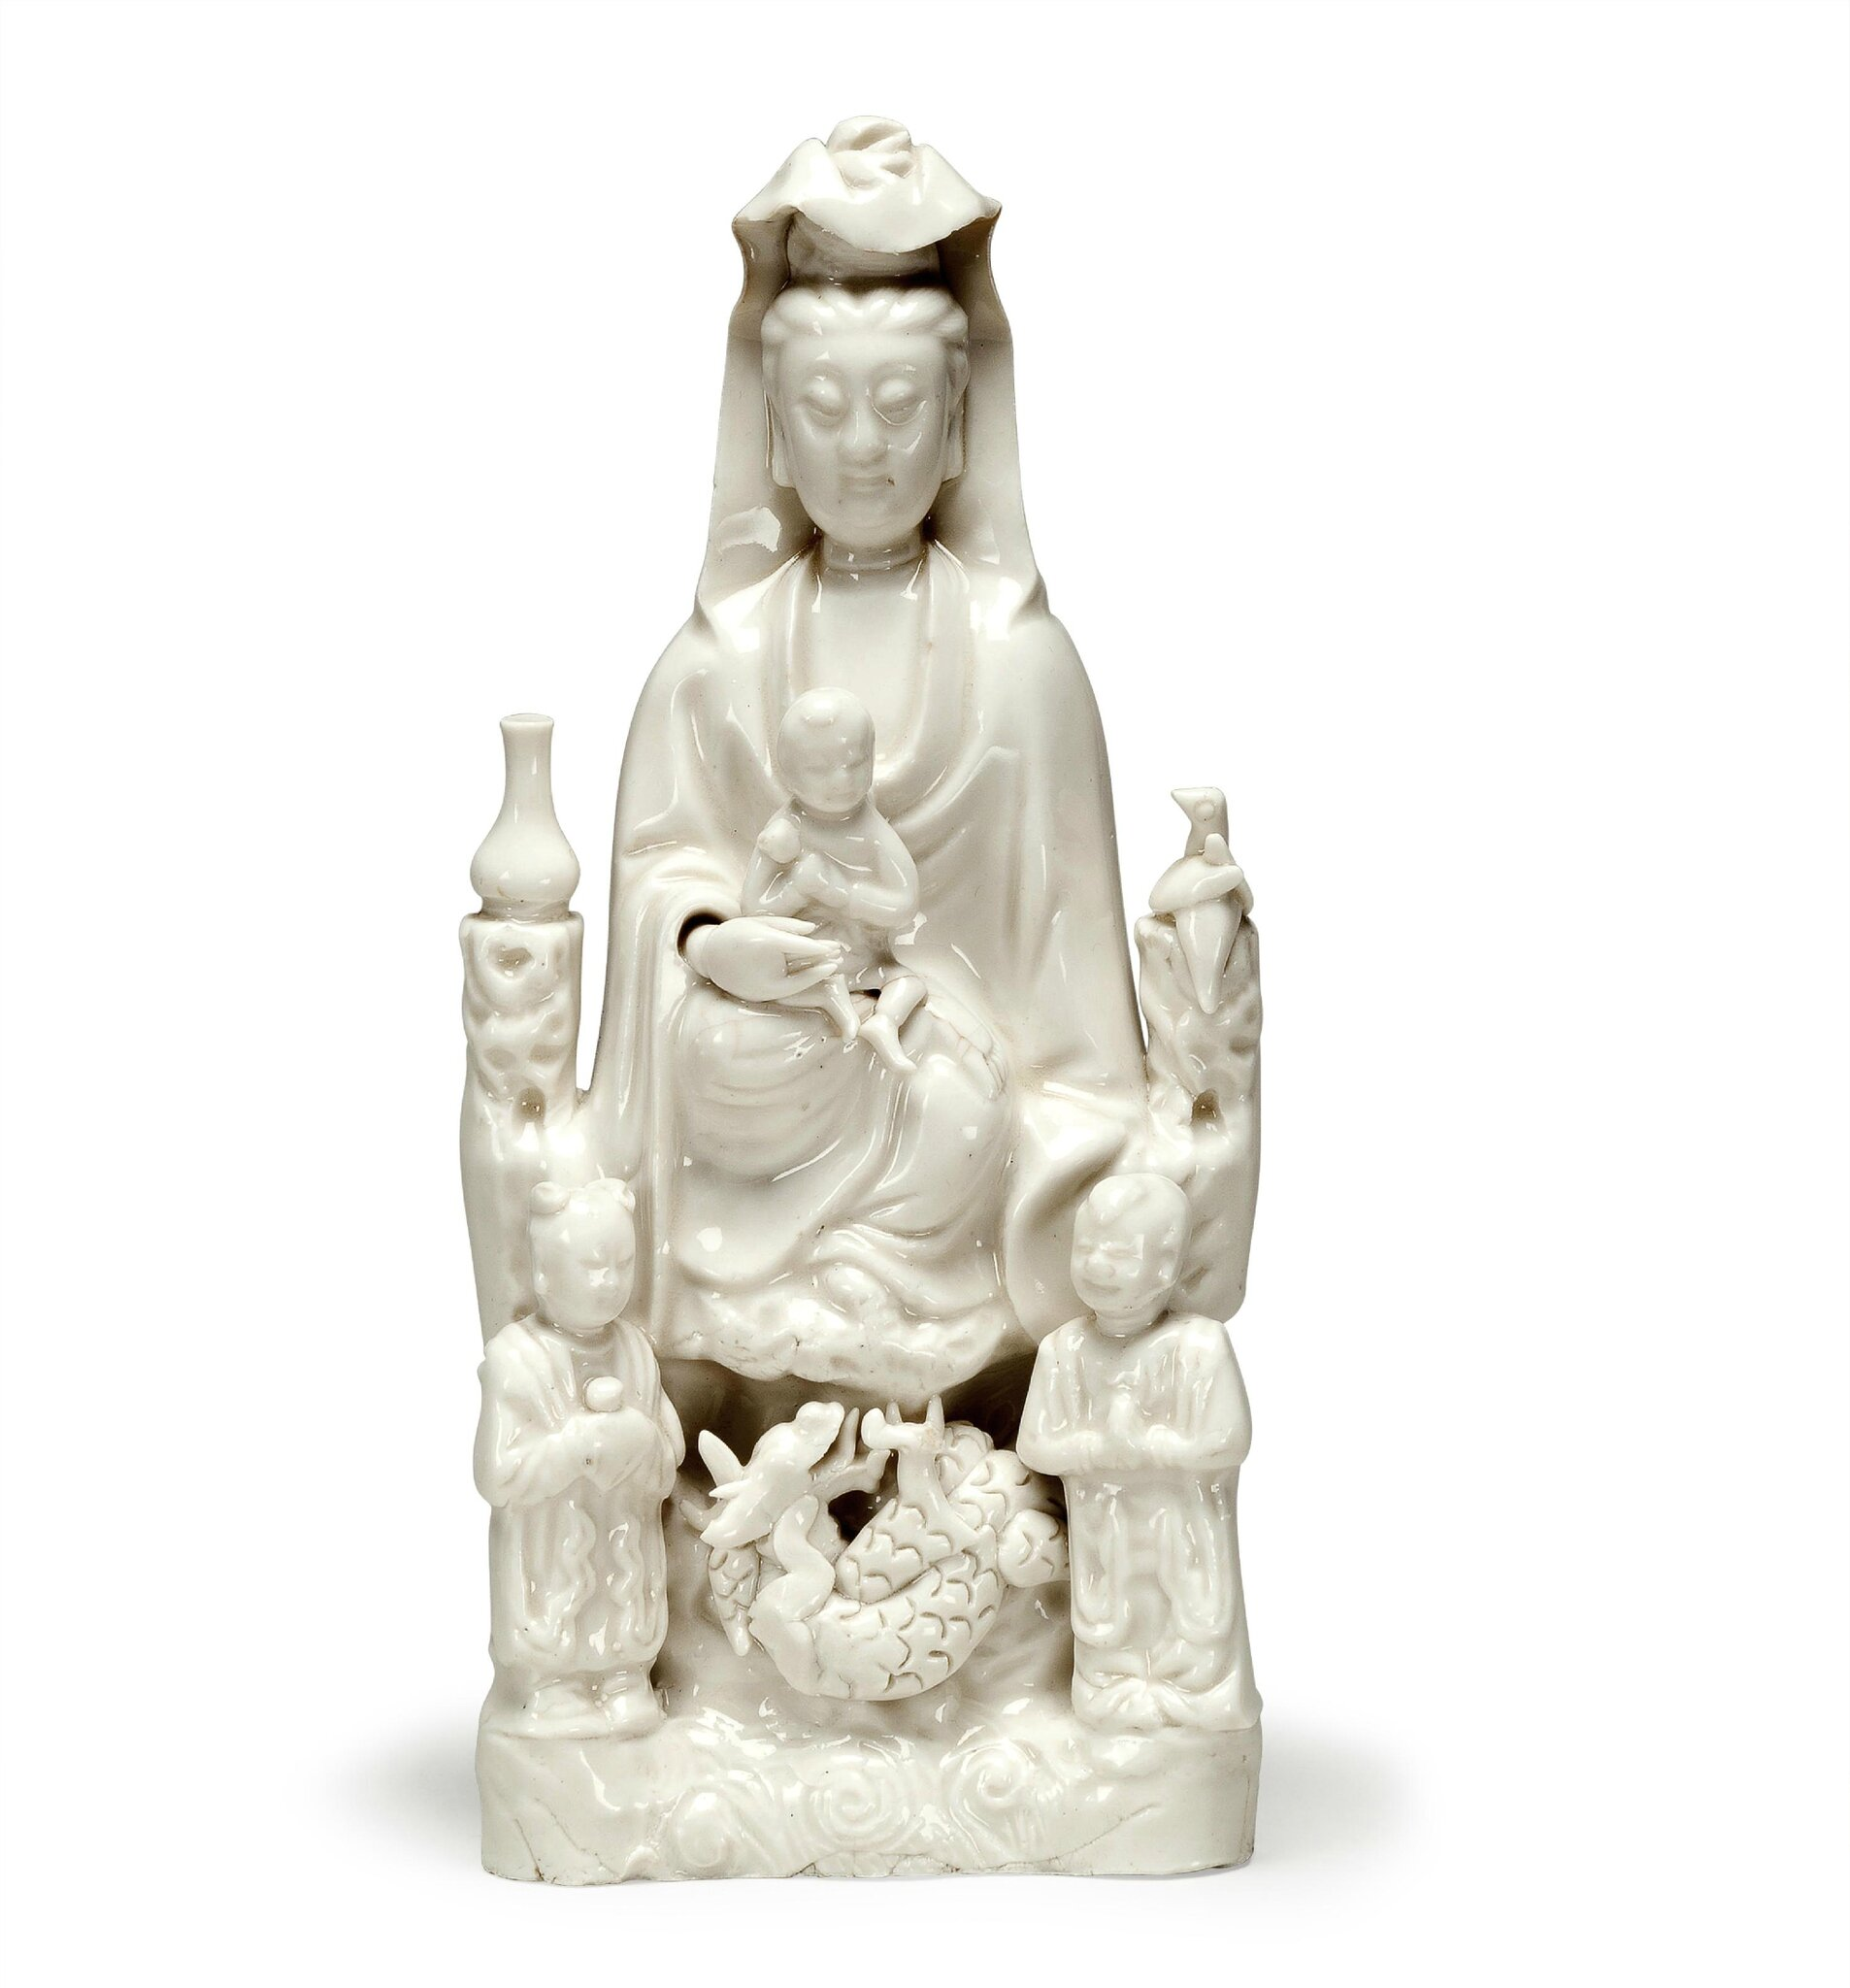 A Dehua figure of seated Guanyin, 17th century